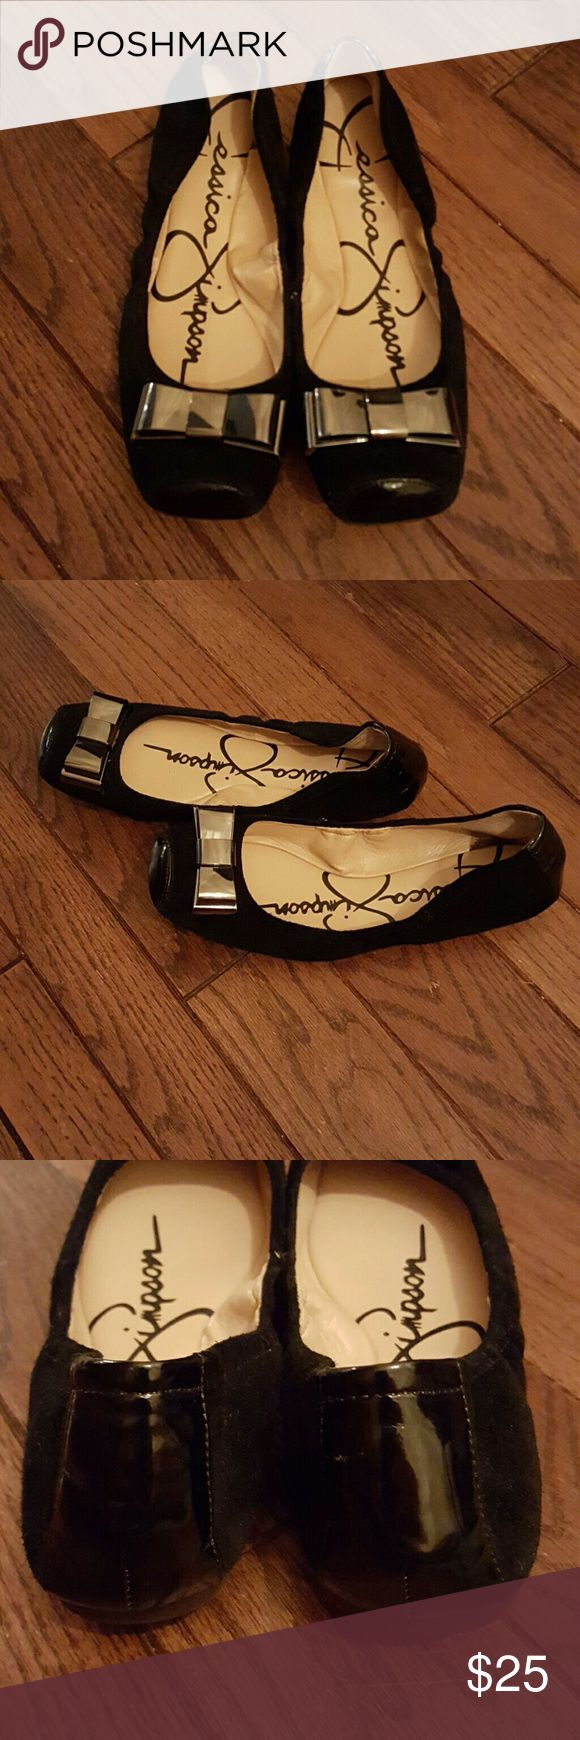 Jessica Simpson Flats EUC ?The Jessica Simpson Monetah Black Oiled Suede Women Shoes featuring suede upper. These stunning shoes are chic and sophisticated, the perfect elegant choice for your next special occasion. Make your most polished moments matter with the Jessica Simpson shoes. Super comfy. Fit true to size. Jessica Simpson Shoes Flats & Loafers